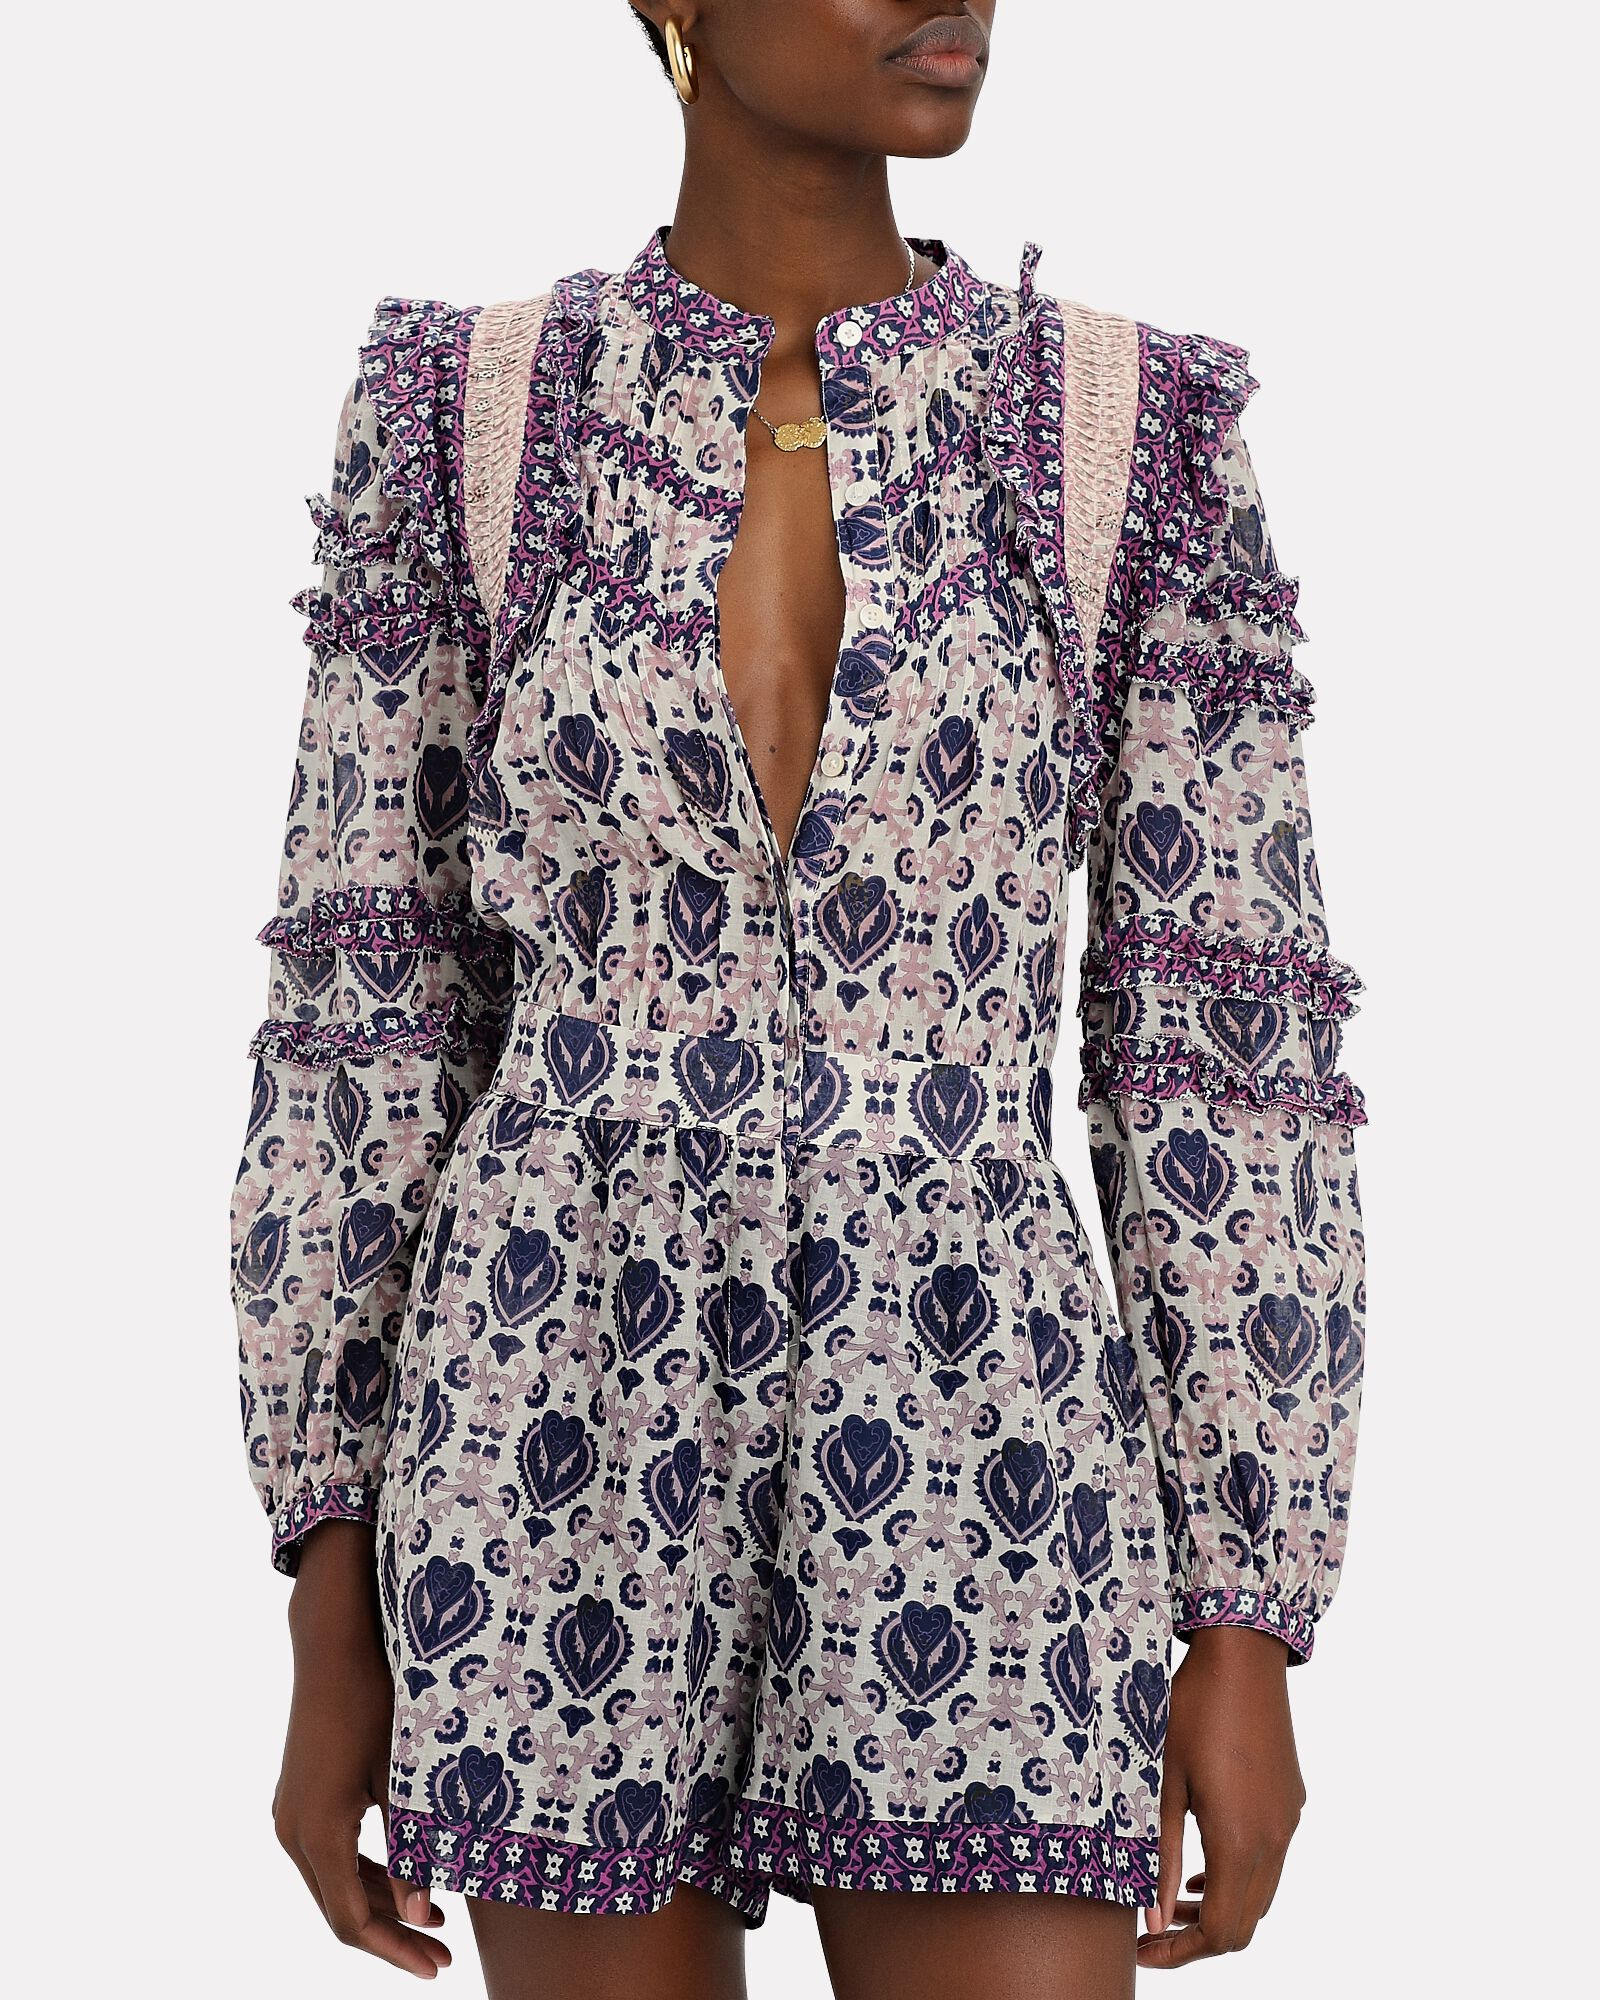 Brigitte Border Printed Romper, PURPLE/CREAM, hi-res